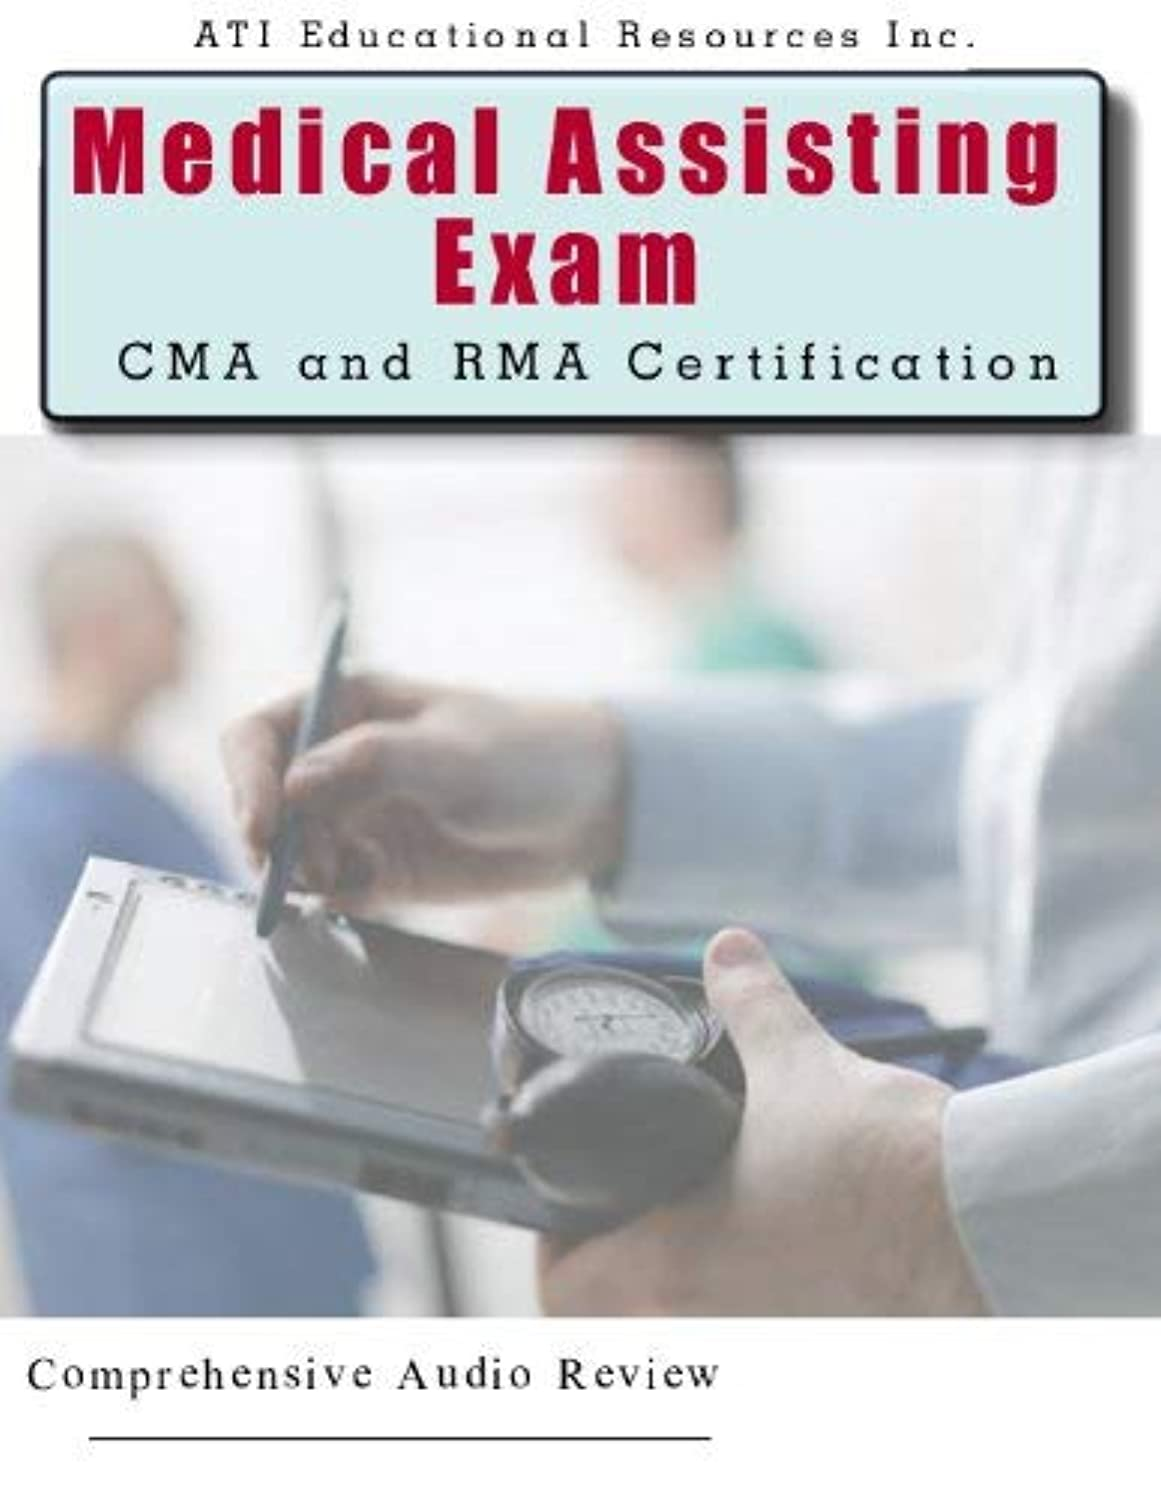 Medical Assisting CMA and RMA Exams Certified Medical Assistant, Registered Medical Assistant Audio Review Course 6 Hours, 6 Audio CD's; Medical Assisting Exam Review for CMA and RMA Certification